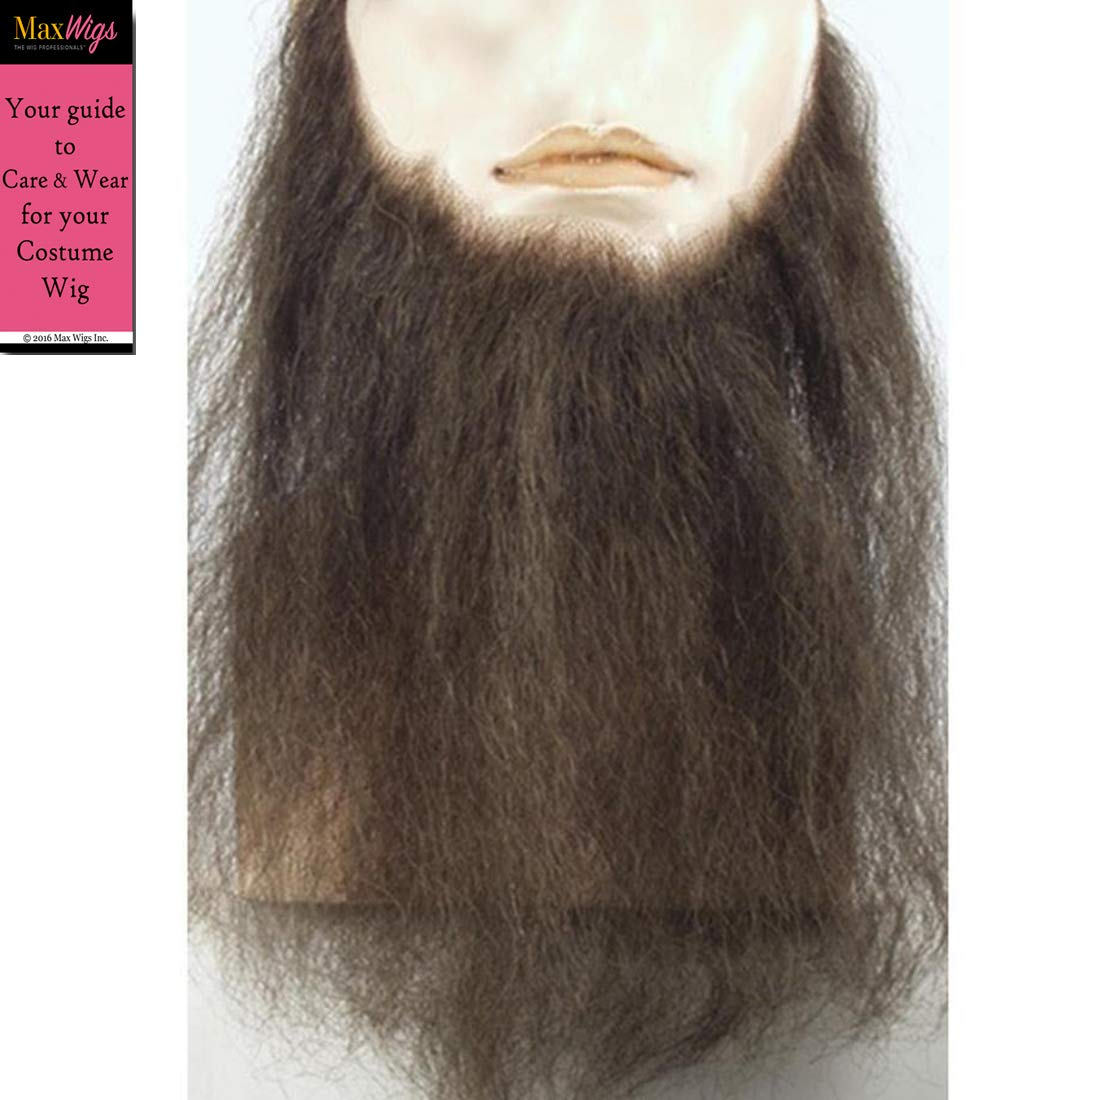 10 Long Full Face Beard Color Auburn Lacey Wigs Human Hair Mens Duck Dynasty Hand-Made Fake Facial Biker Amish Bundle with MaxWigs Hairloss Booklet